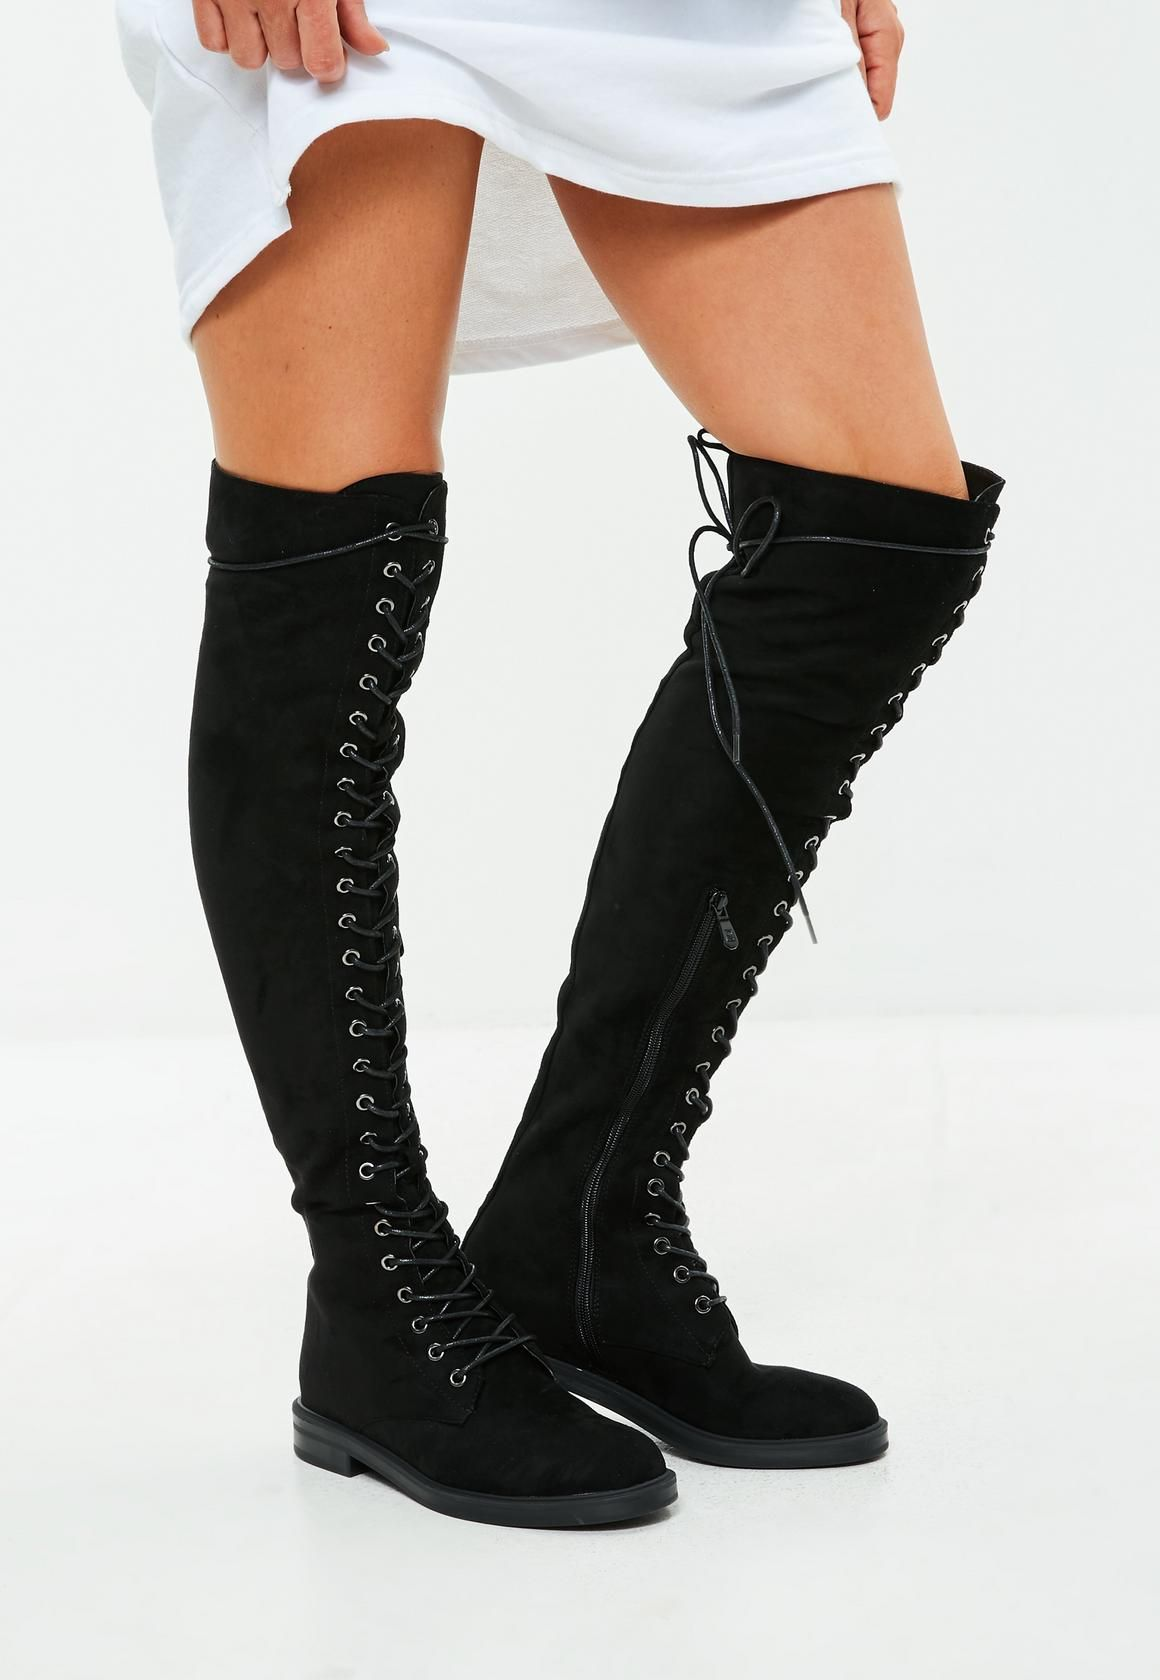 07f9601b4f5 Missguided - Black Lace Up Over The Knee Boots